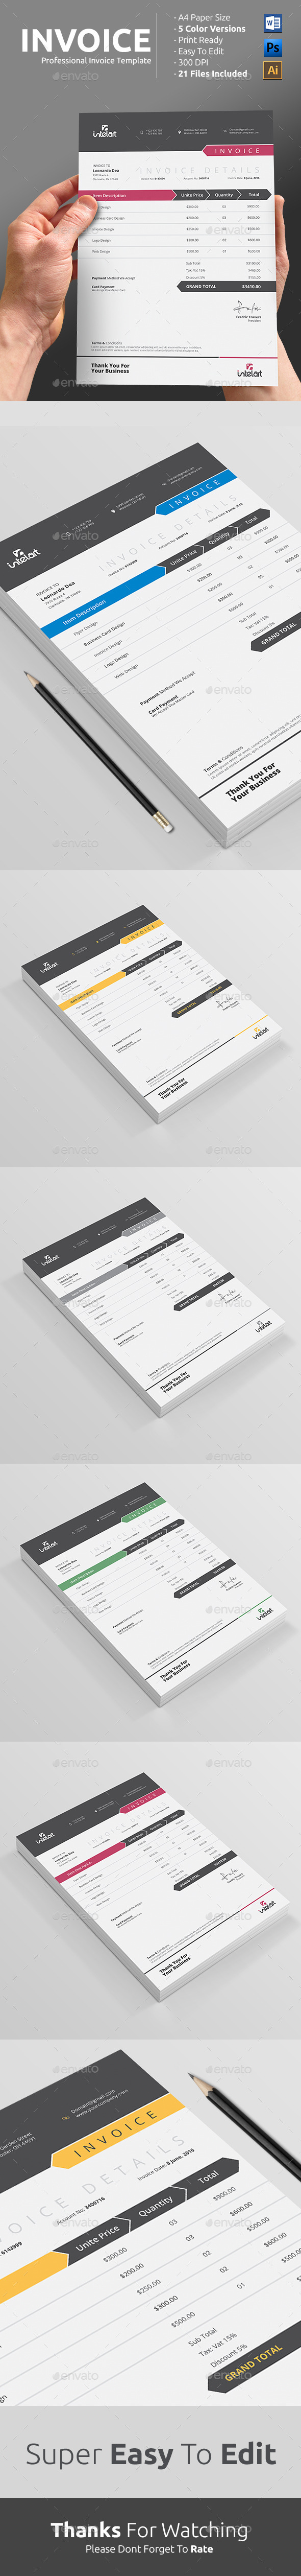 Pin By Best Graphic Design On Proposal Invoice Templates Invoice